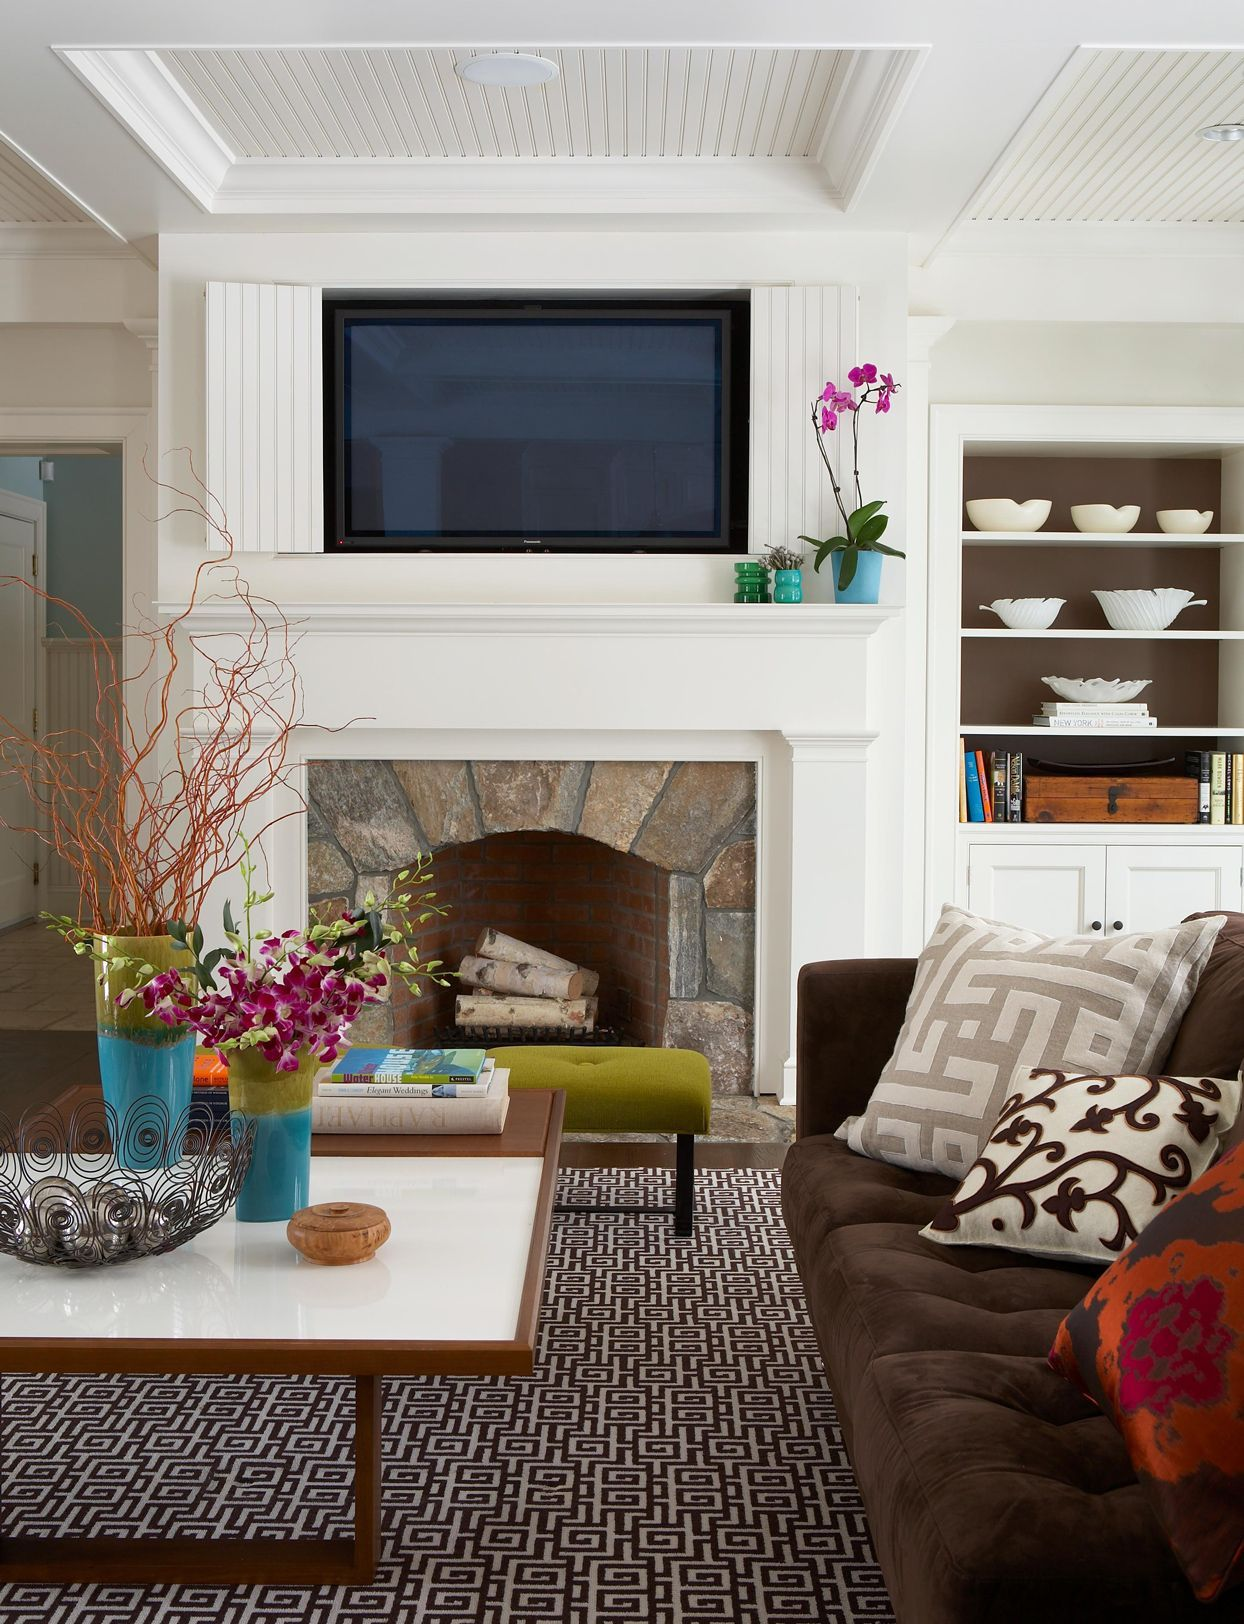 Make Your Fireplace A Focal Point With These 26 Mantel Decor Ideas Living Room Tv Wall Build A Fireplace Transitional Living Rooms